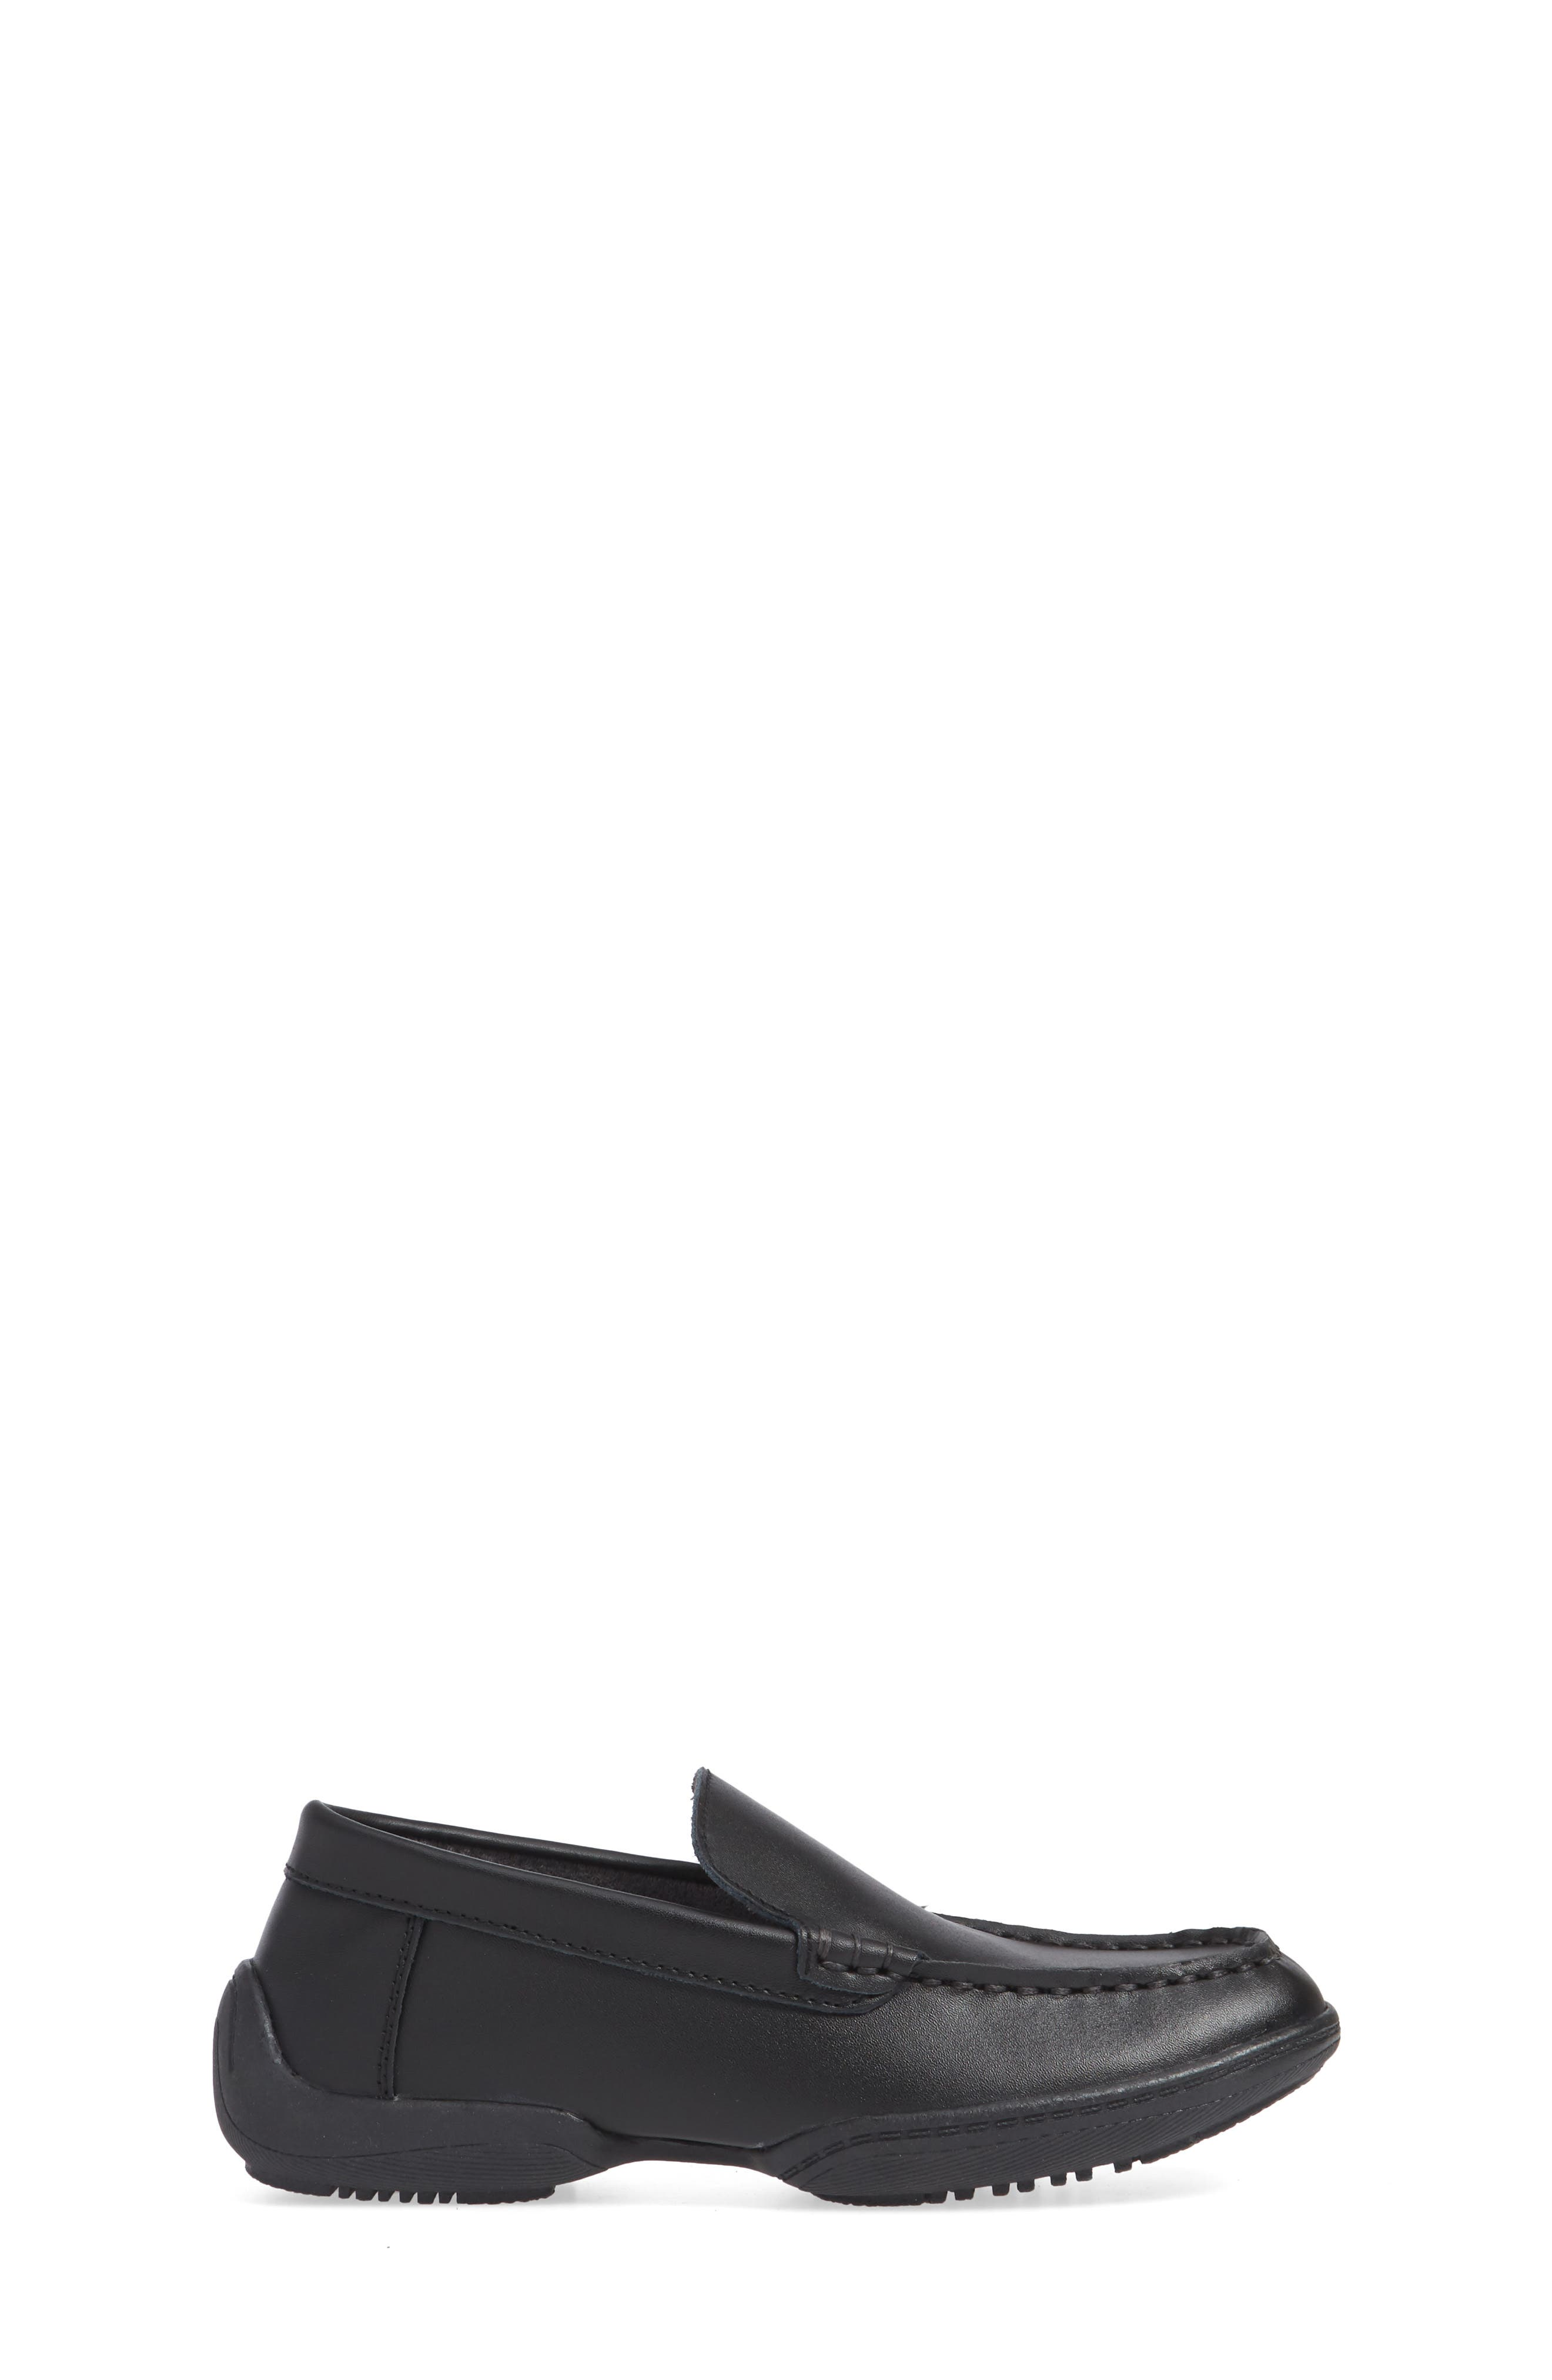 REACTION KENNETH COLE, Driving Dime Moccasin, Alternate thumbnail 3, color, DARK BLACK LEATHER